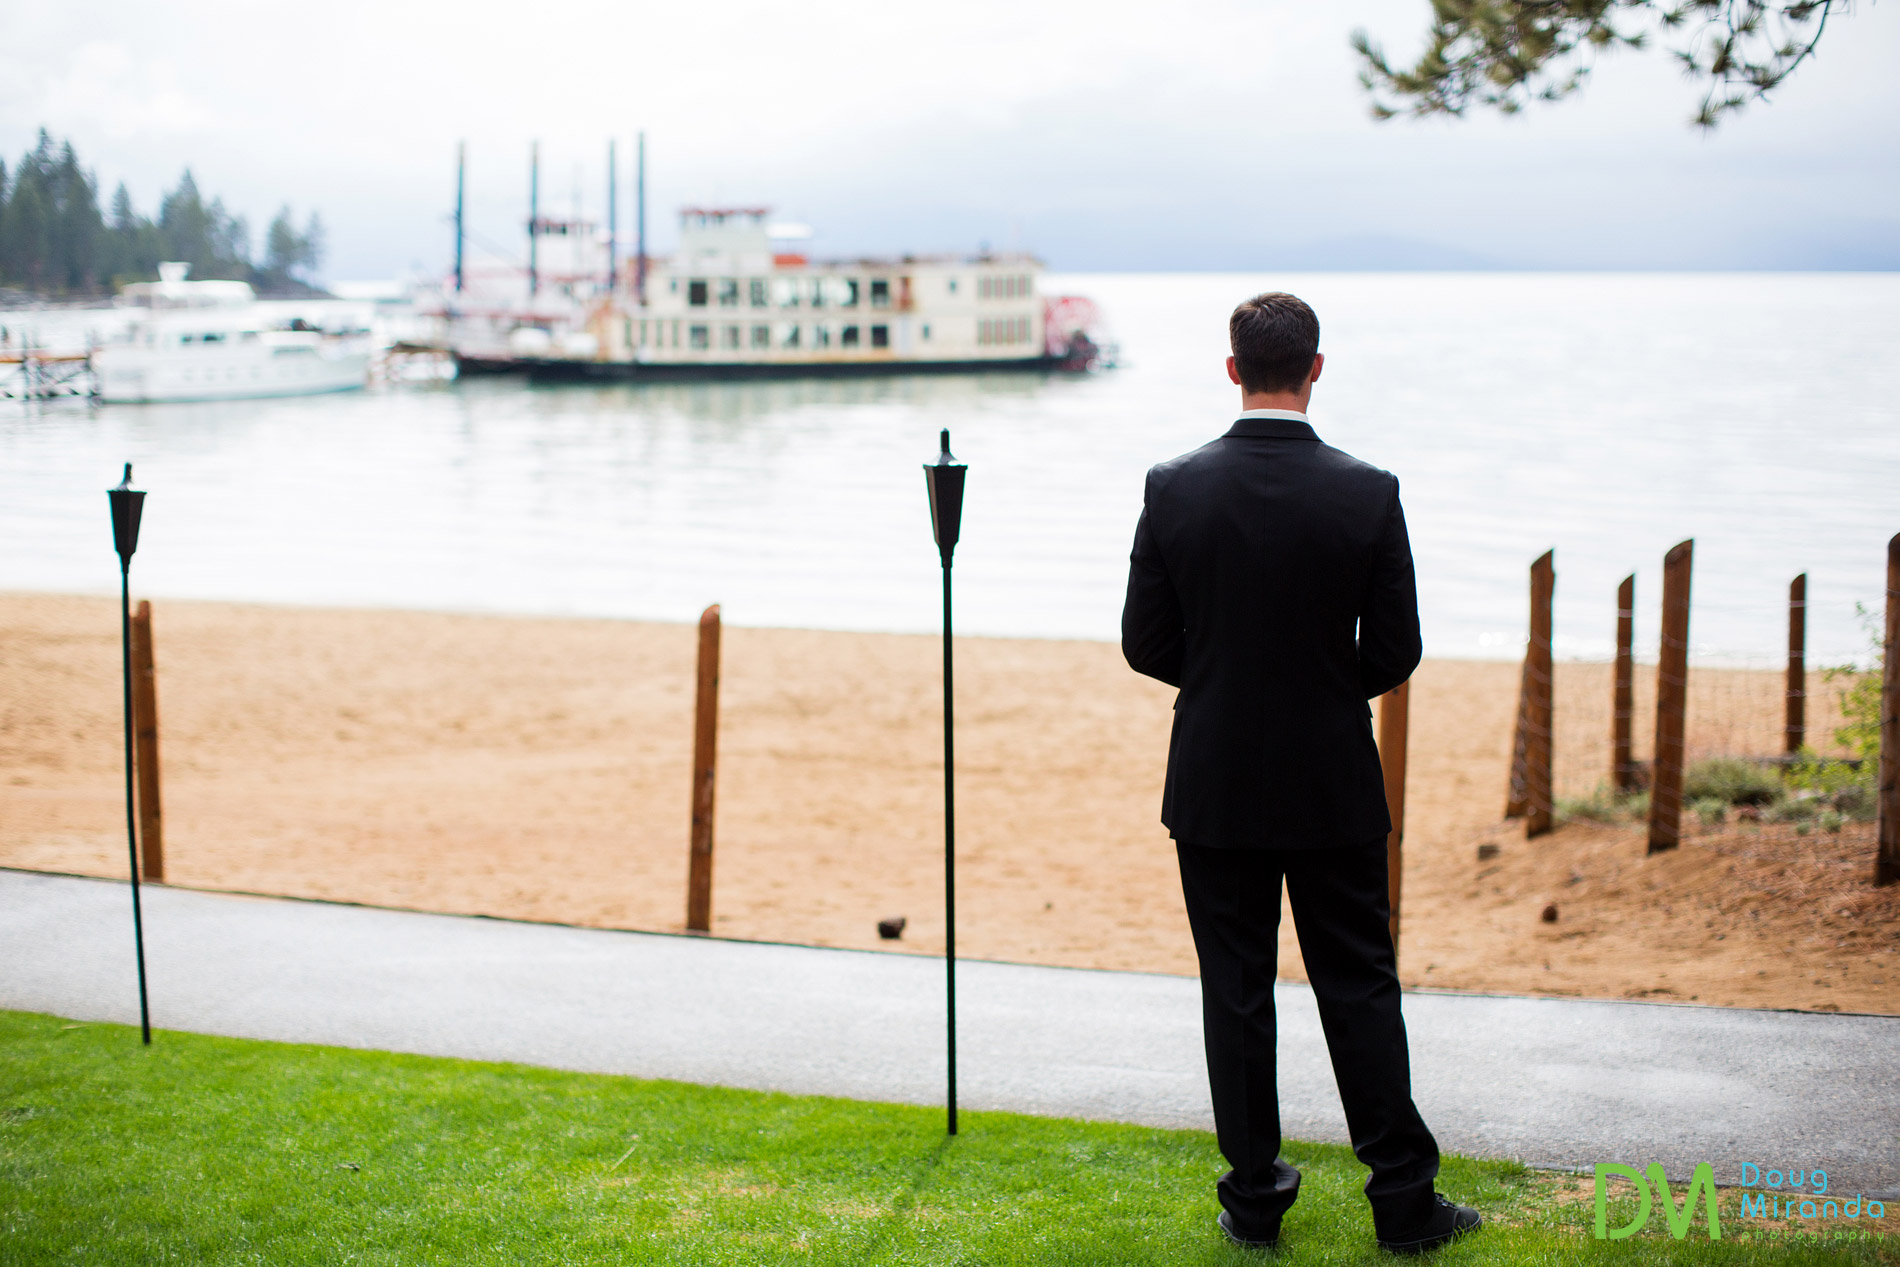 Matt having some alone time before the start of his wedding ceremony at Zephyr Cove Resort.